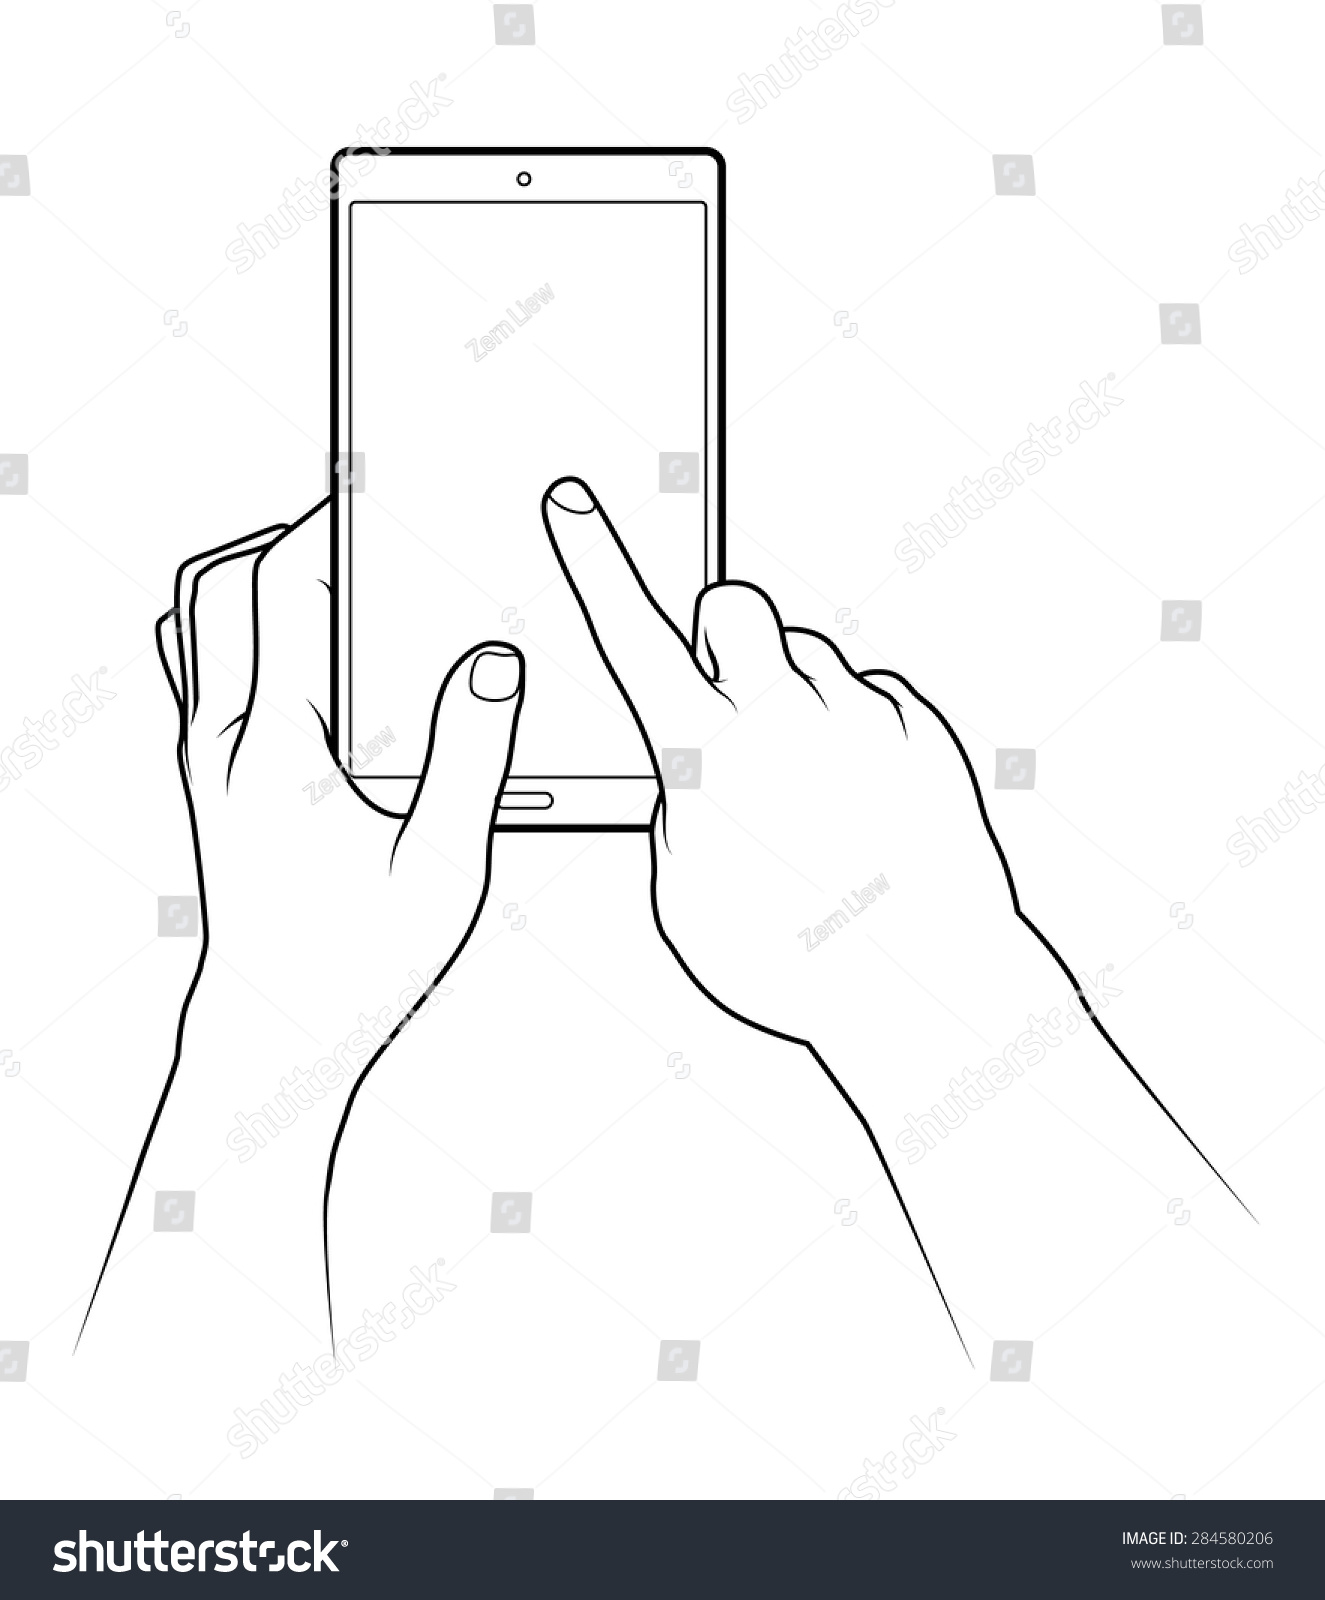 Drawing Smooth Lines In Photo With Tablet : Line drawing pair human male hands stock vector